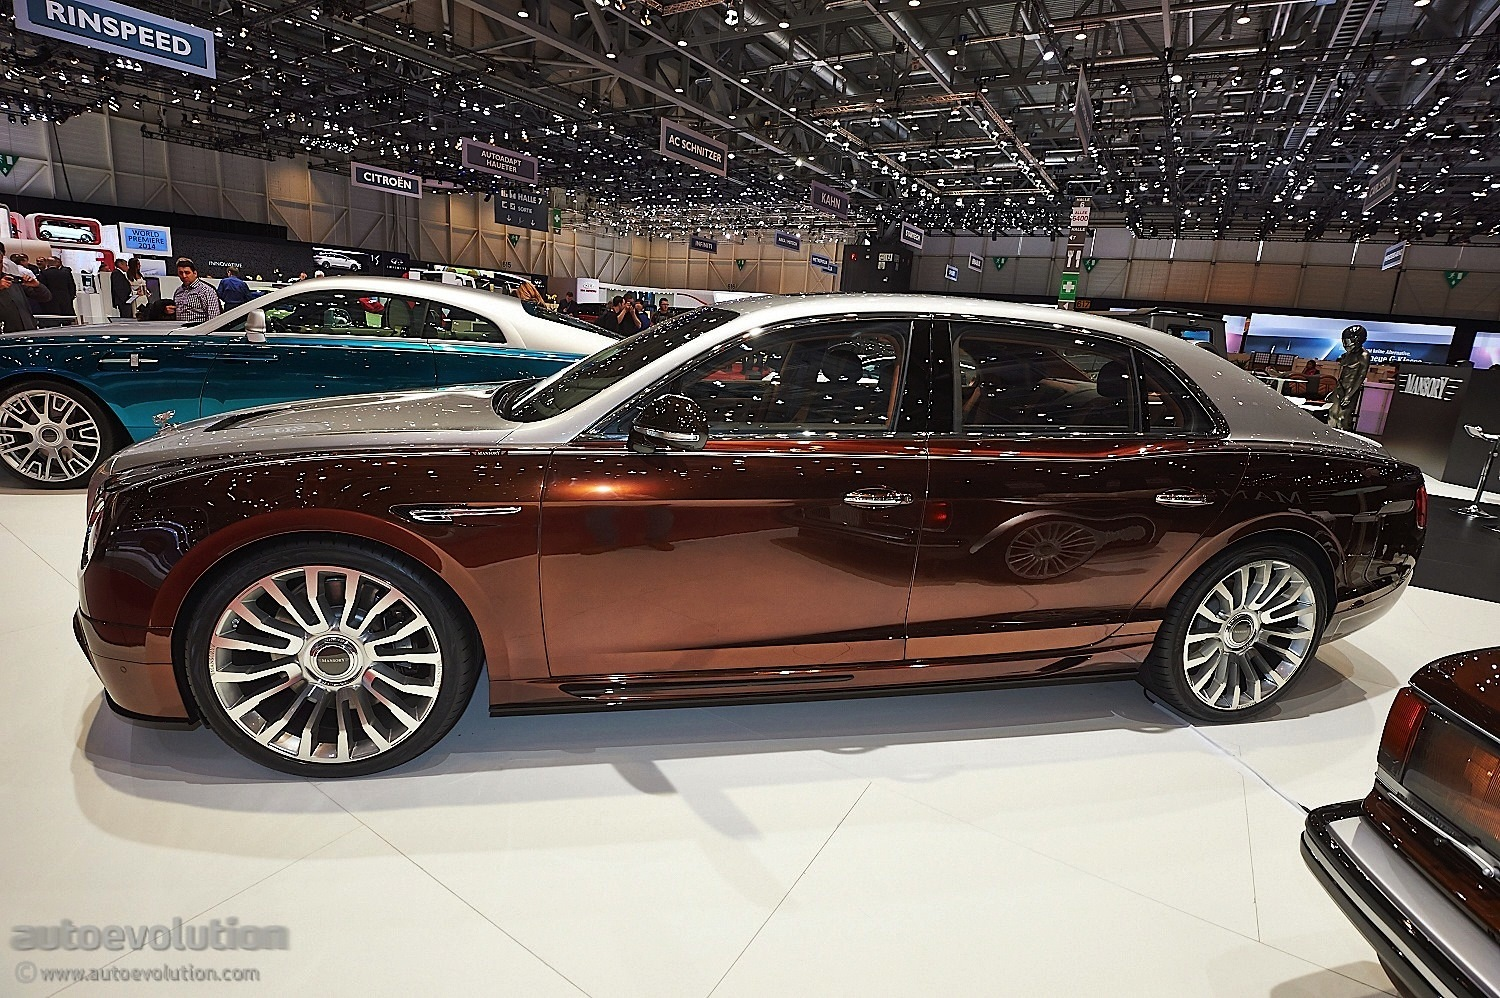 Bentley Flying Spur Modified >> Mansory Presents Tuning Kit For Bentley Flying Spur in Geneva [Live Photos] - autoevolution